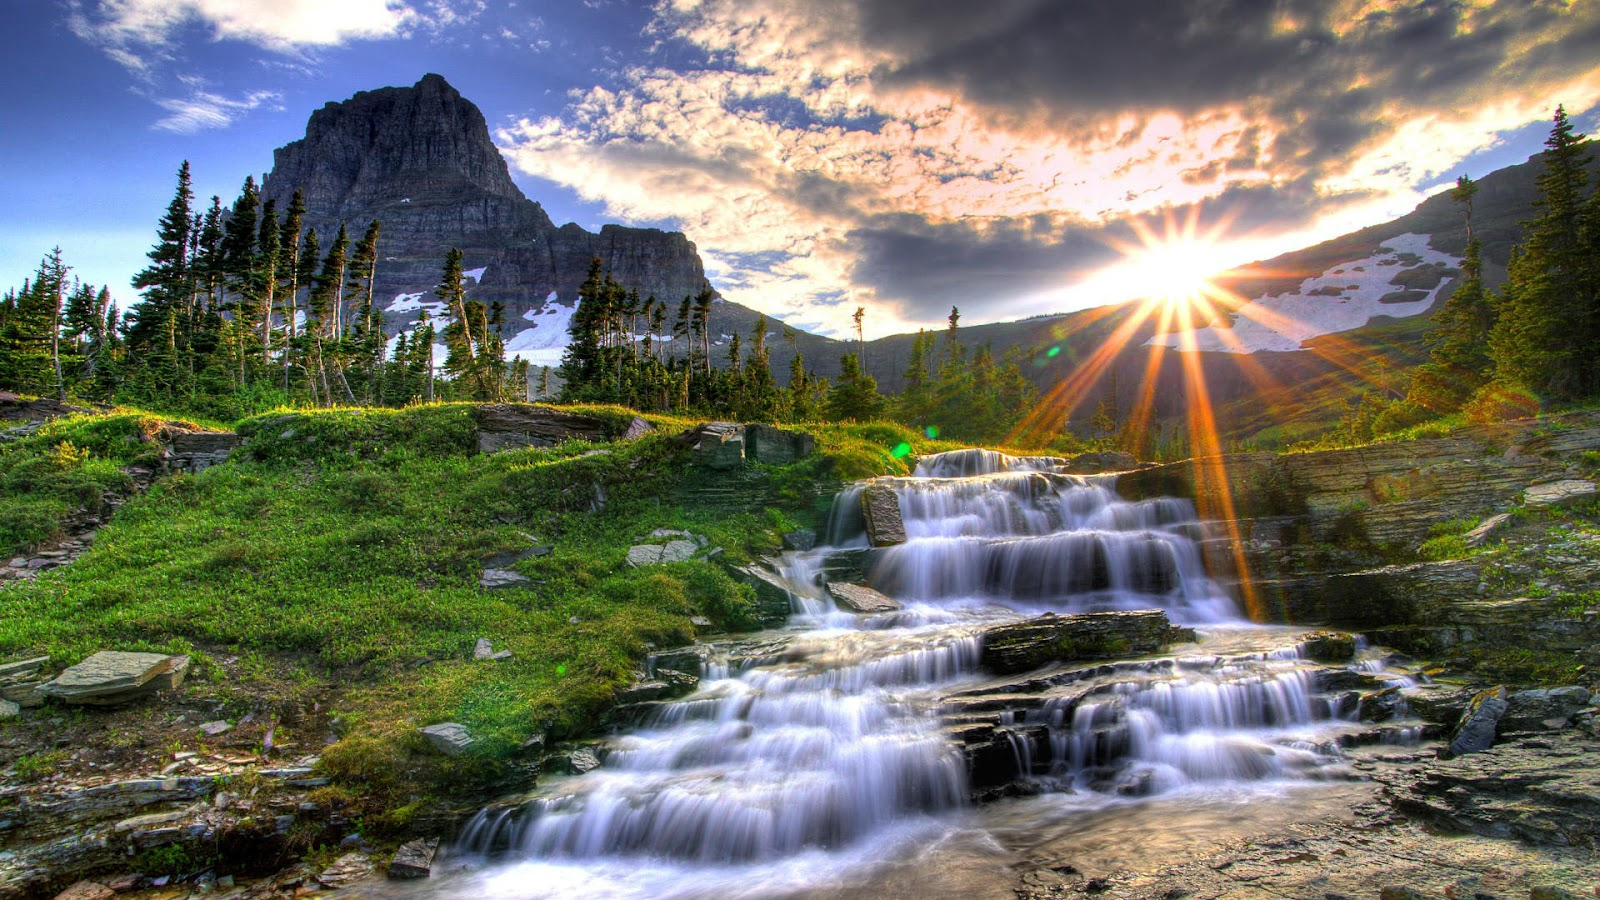 Shining Sun Full HD Nature Background Wallpaper For Laptop Widescreen 1600x900